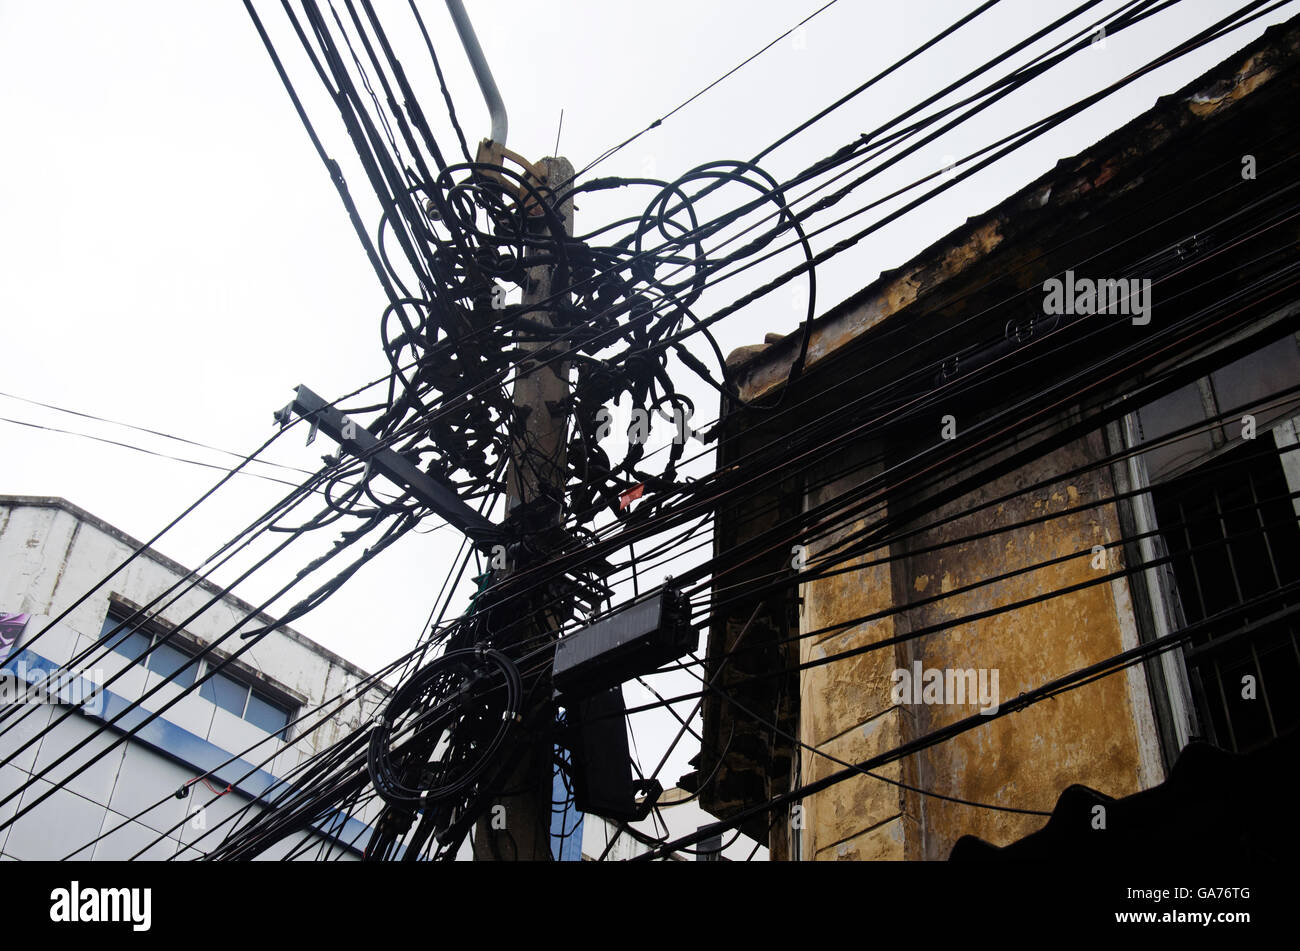 many wires messy with power line cables, transformers and phone Power Pole Transformer Wiring many wires messy with power line cables, transformers and phone lines on old electricity pillar or utility pole at beside road a power pole transformer wiring